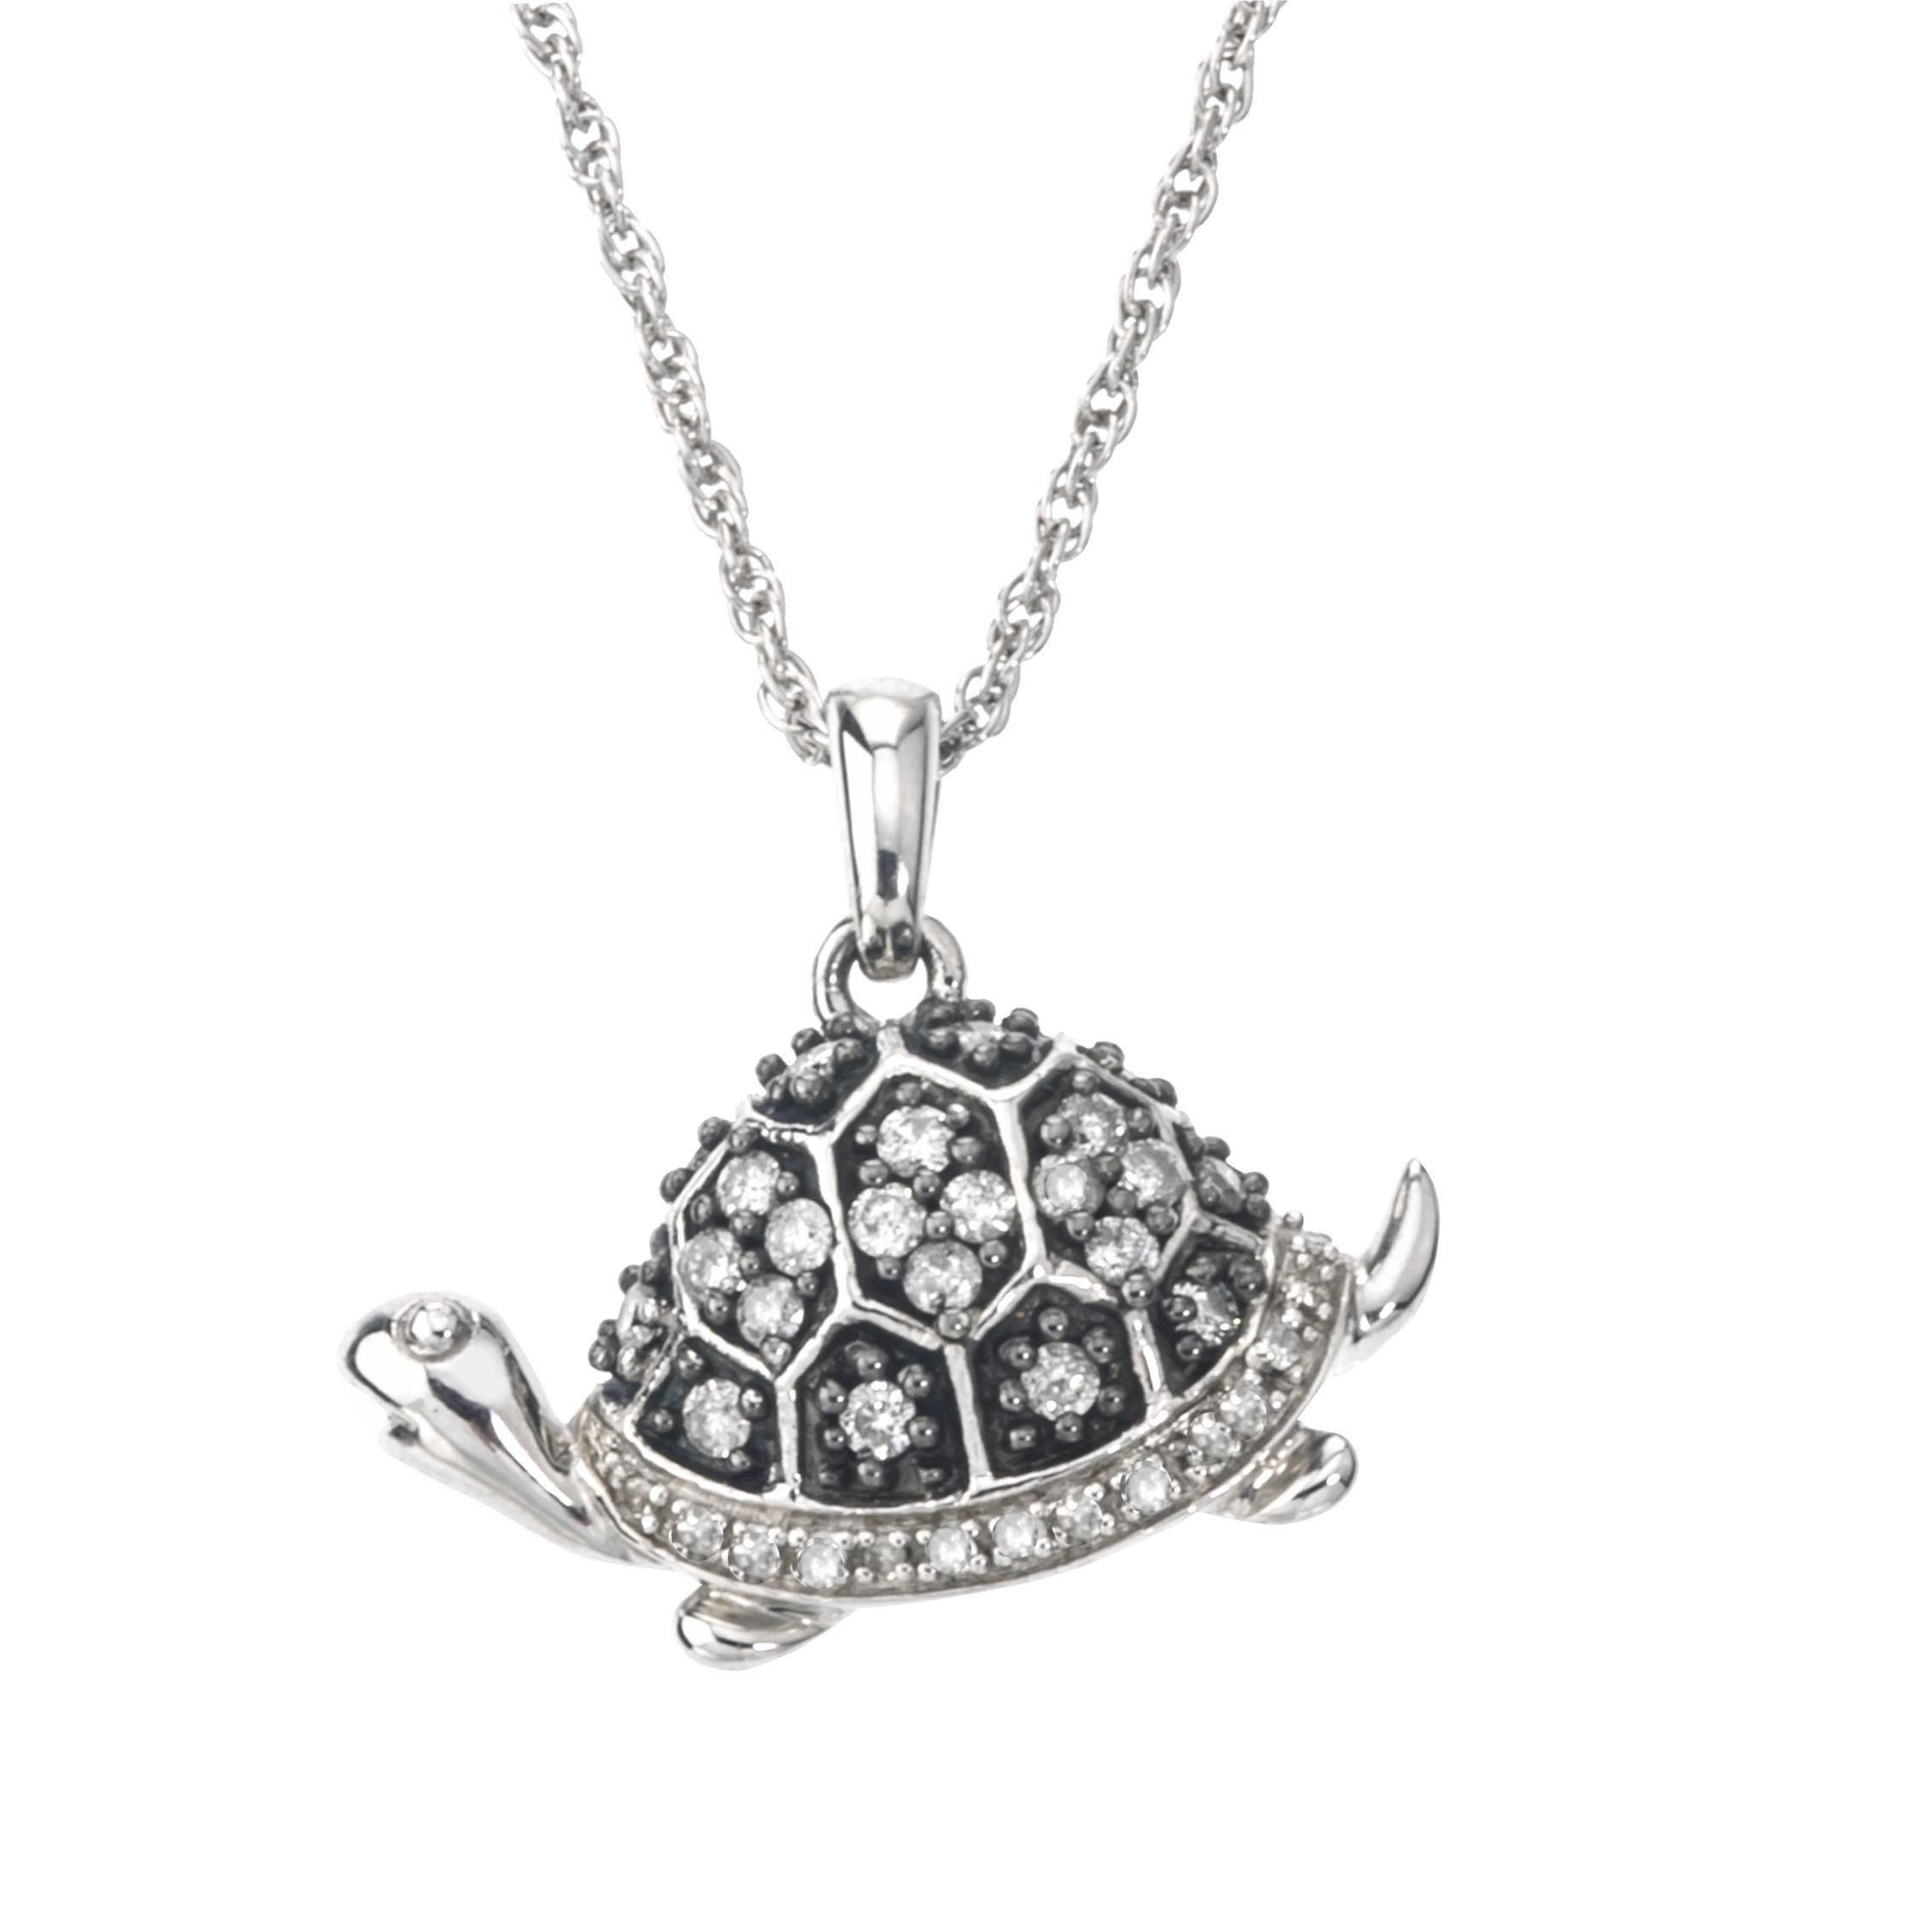 Silvermist Silver Sterling 3 8ct Tdw Grey And Diamond Turtle Necklace By Ever One